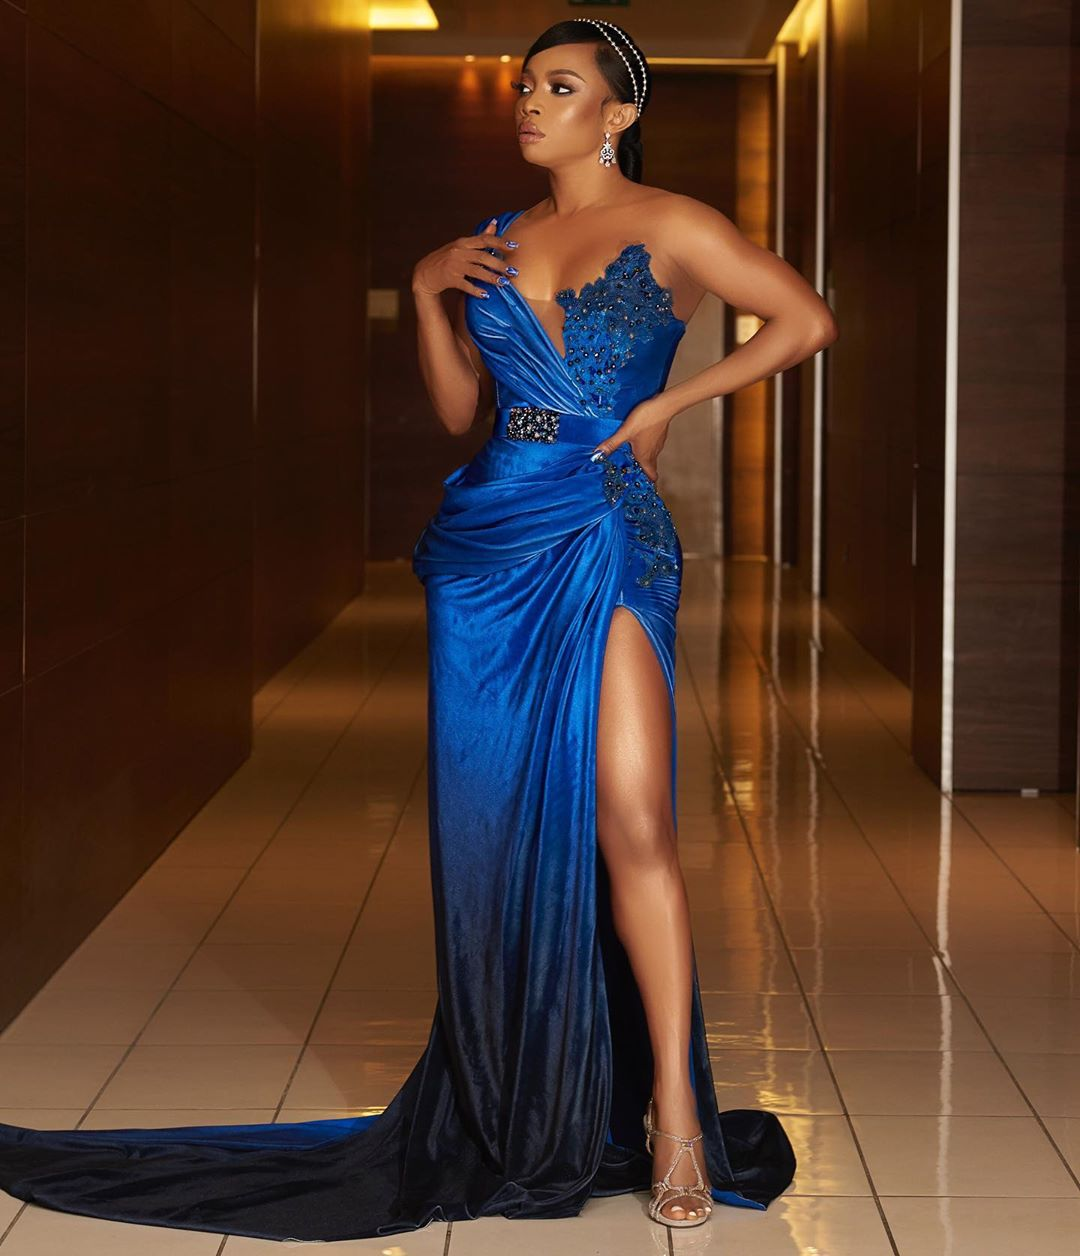 """I have been self-isolating"" Toke Makinwa says amidst AMVCA/Coronavirus news"